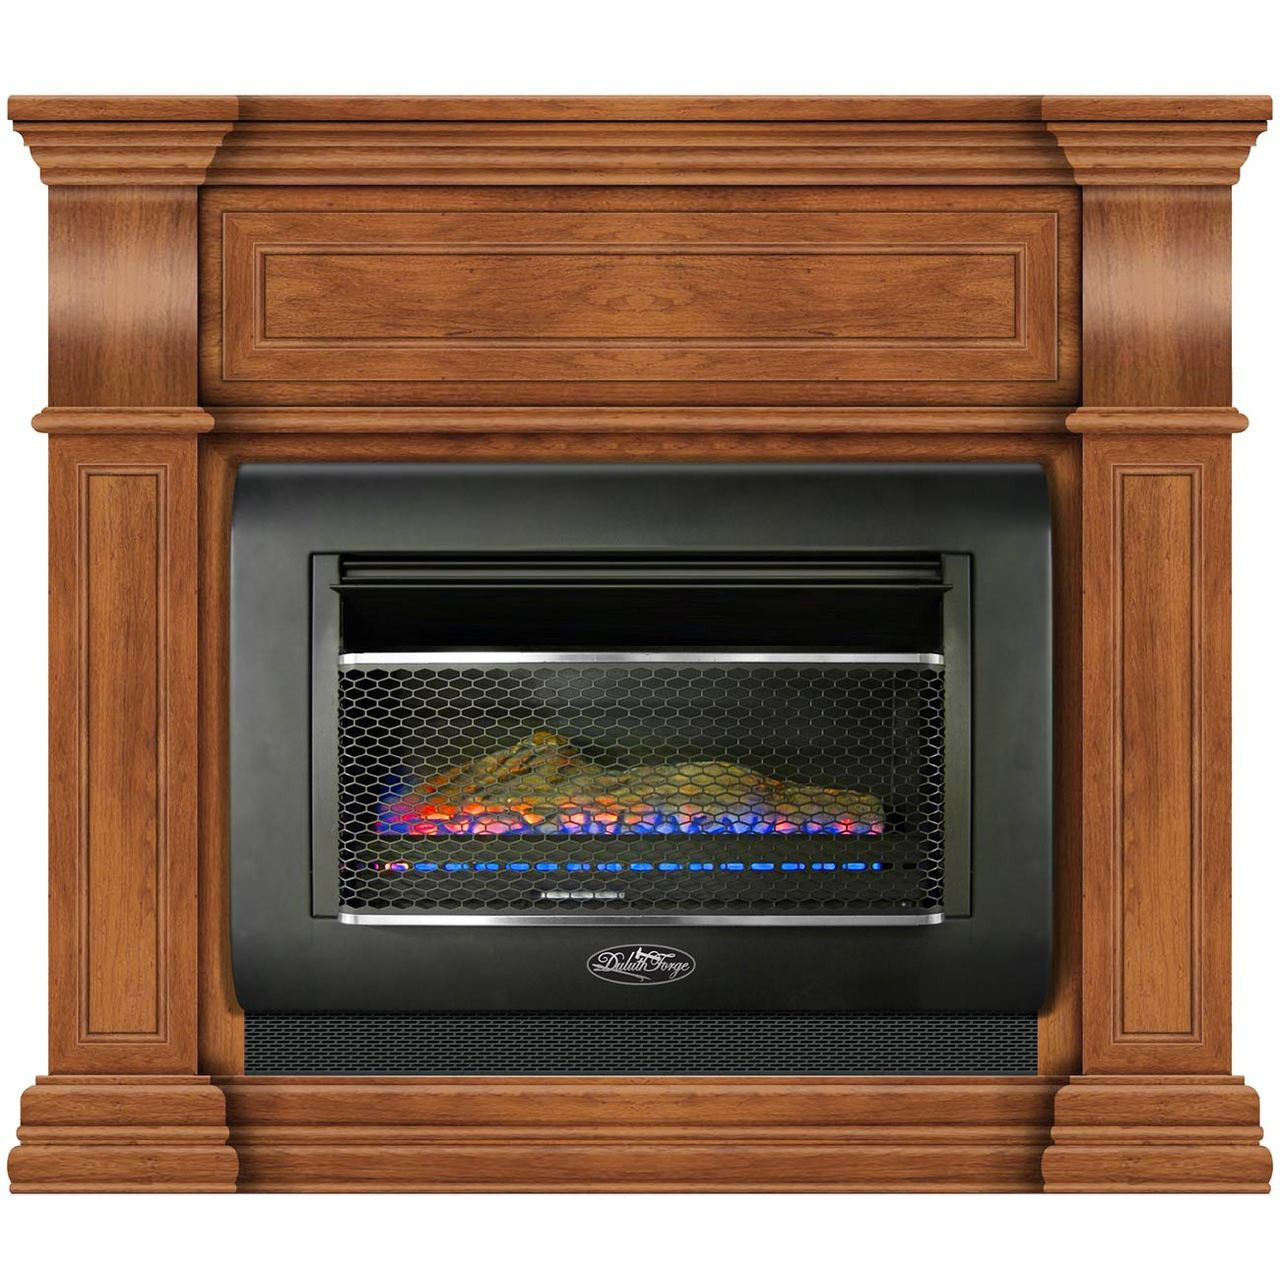 Duluth Forge Mini Hearth Ventless Gas Wall Fireplace 26 000 Btu T